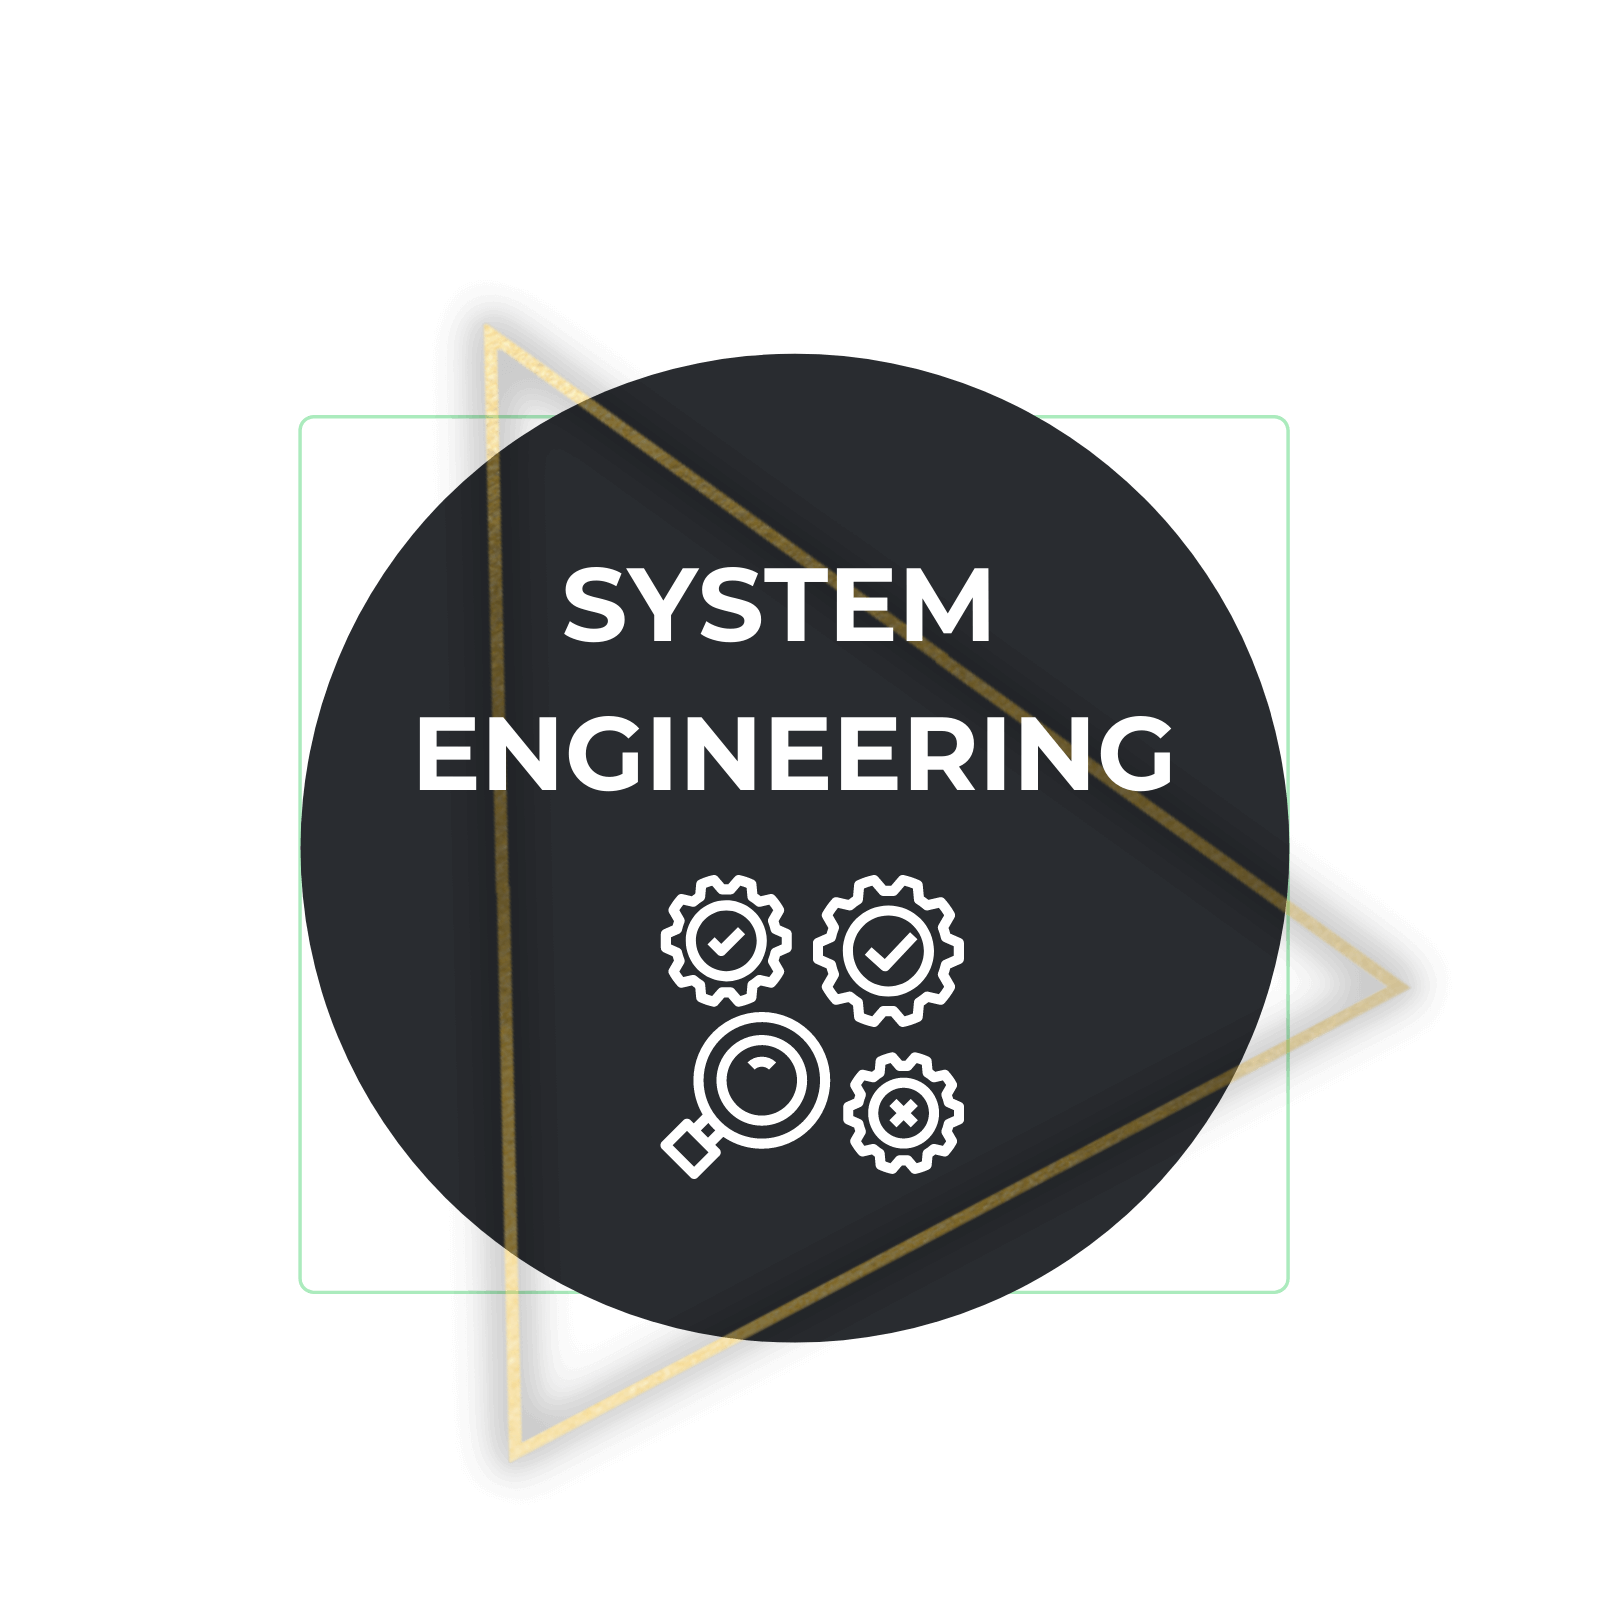 System Engineering, Agile Business Concepts